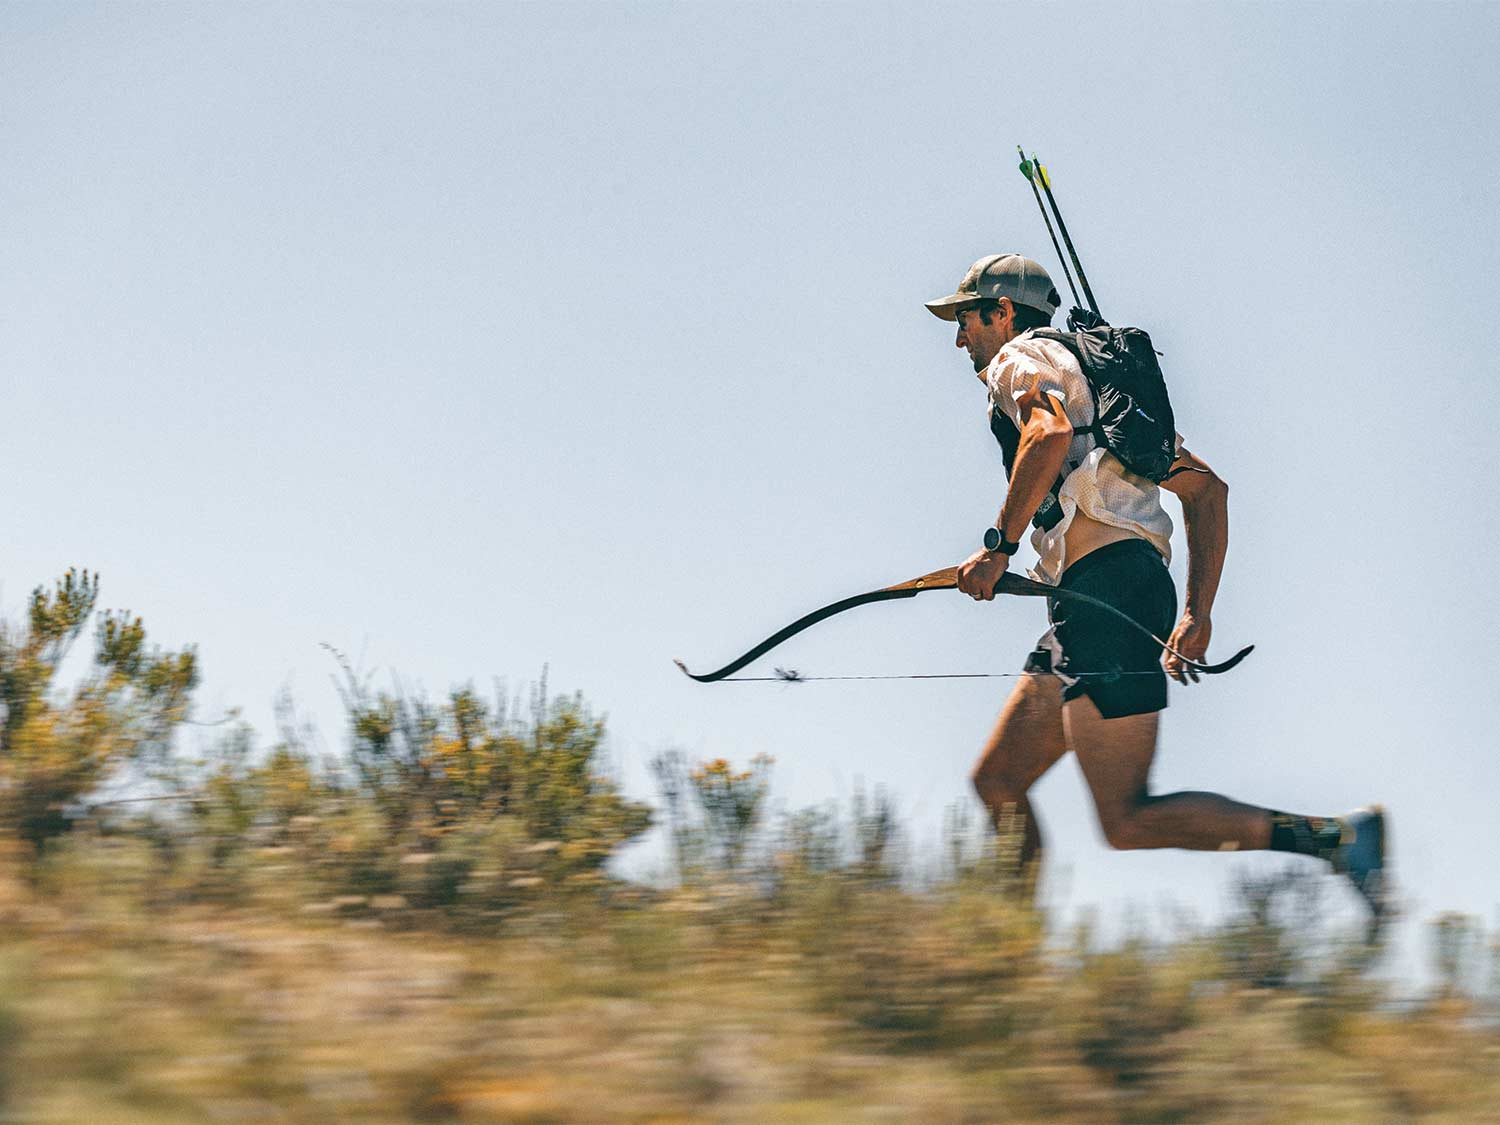 A hunter holds a traditional bow and runs through an open field.